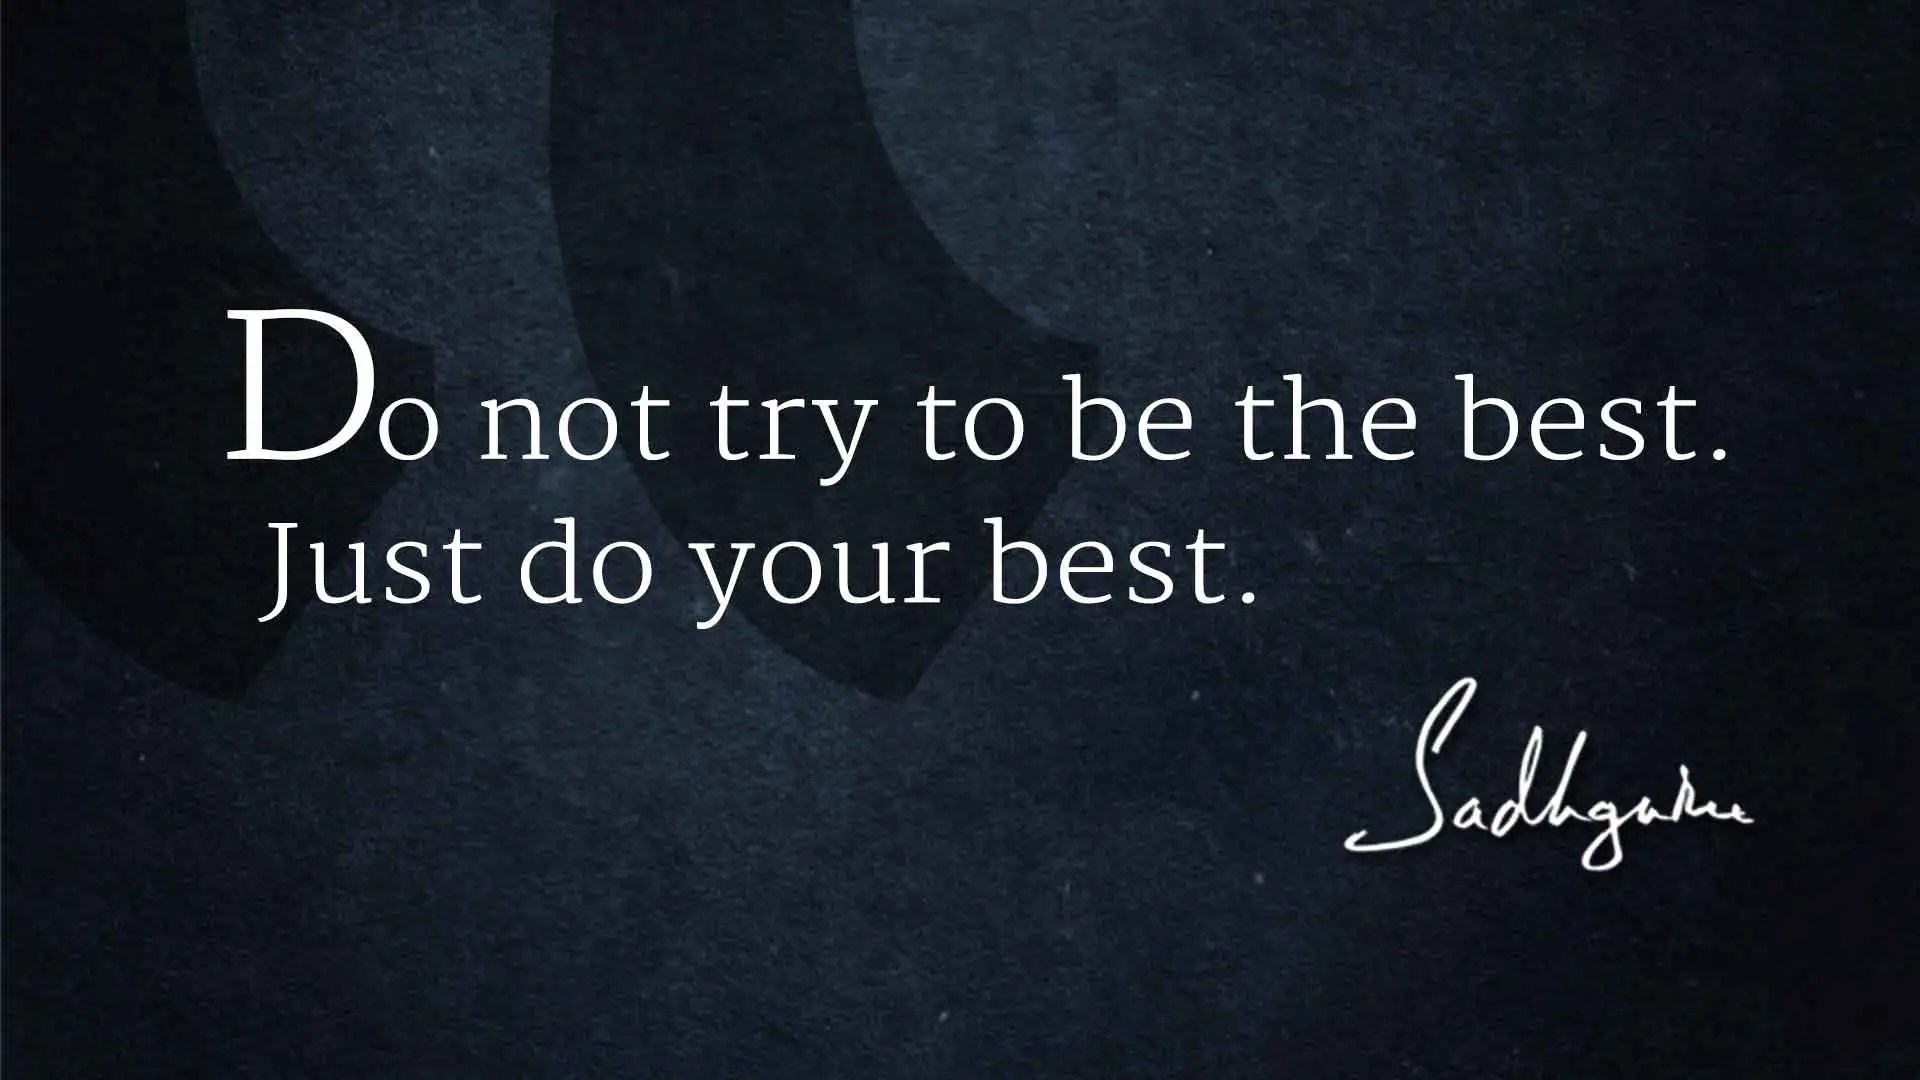 Encouraging Quotes Wallpaper Free Download 5 Sadhguru Quotes For The New Year The Isha Blog